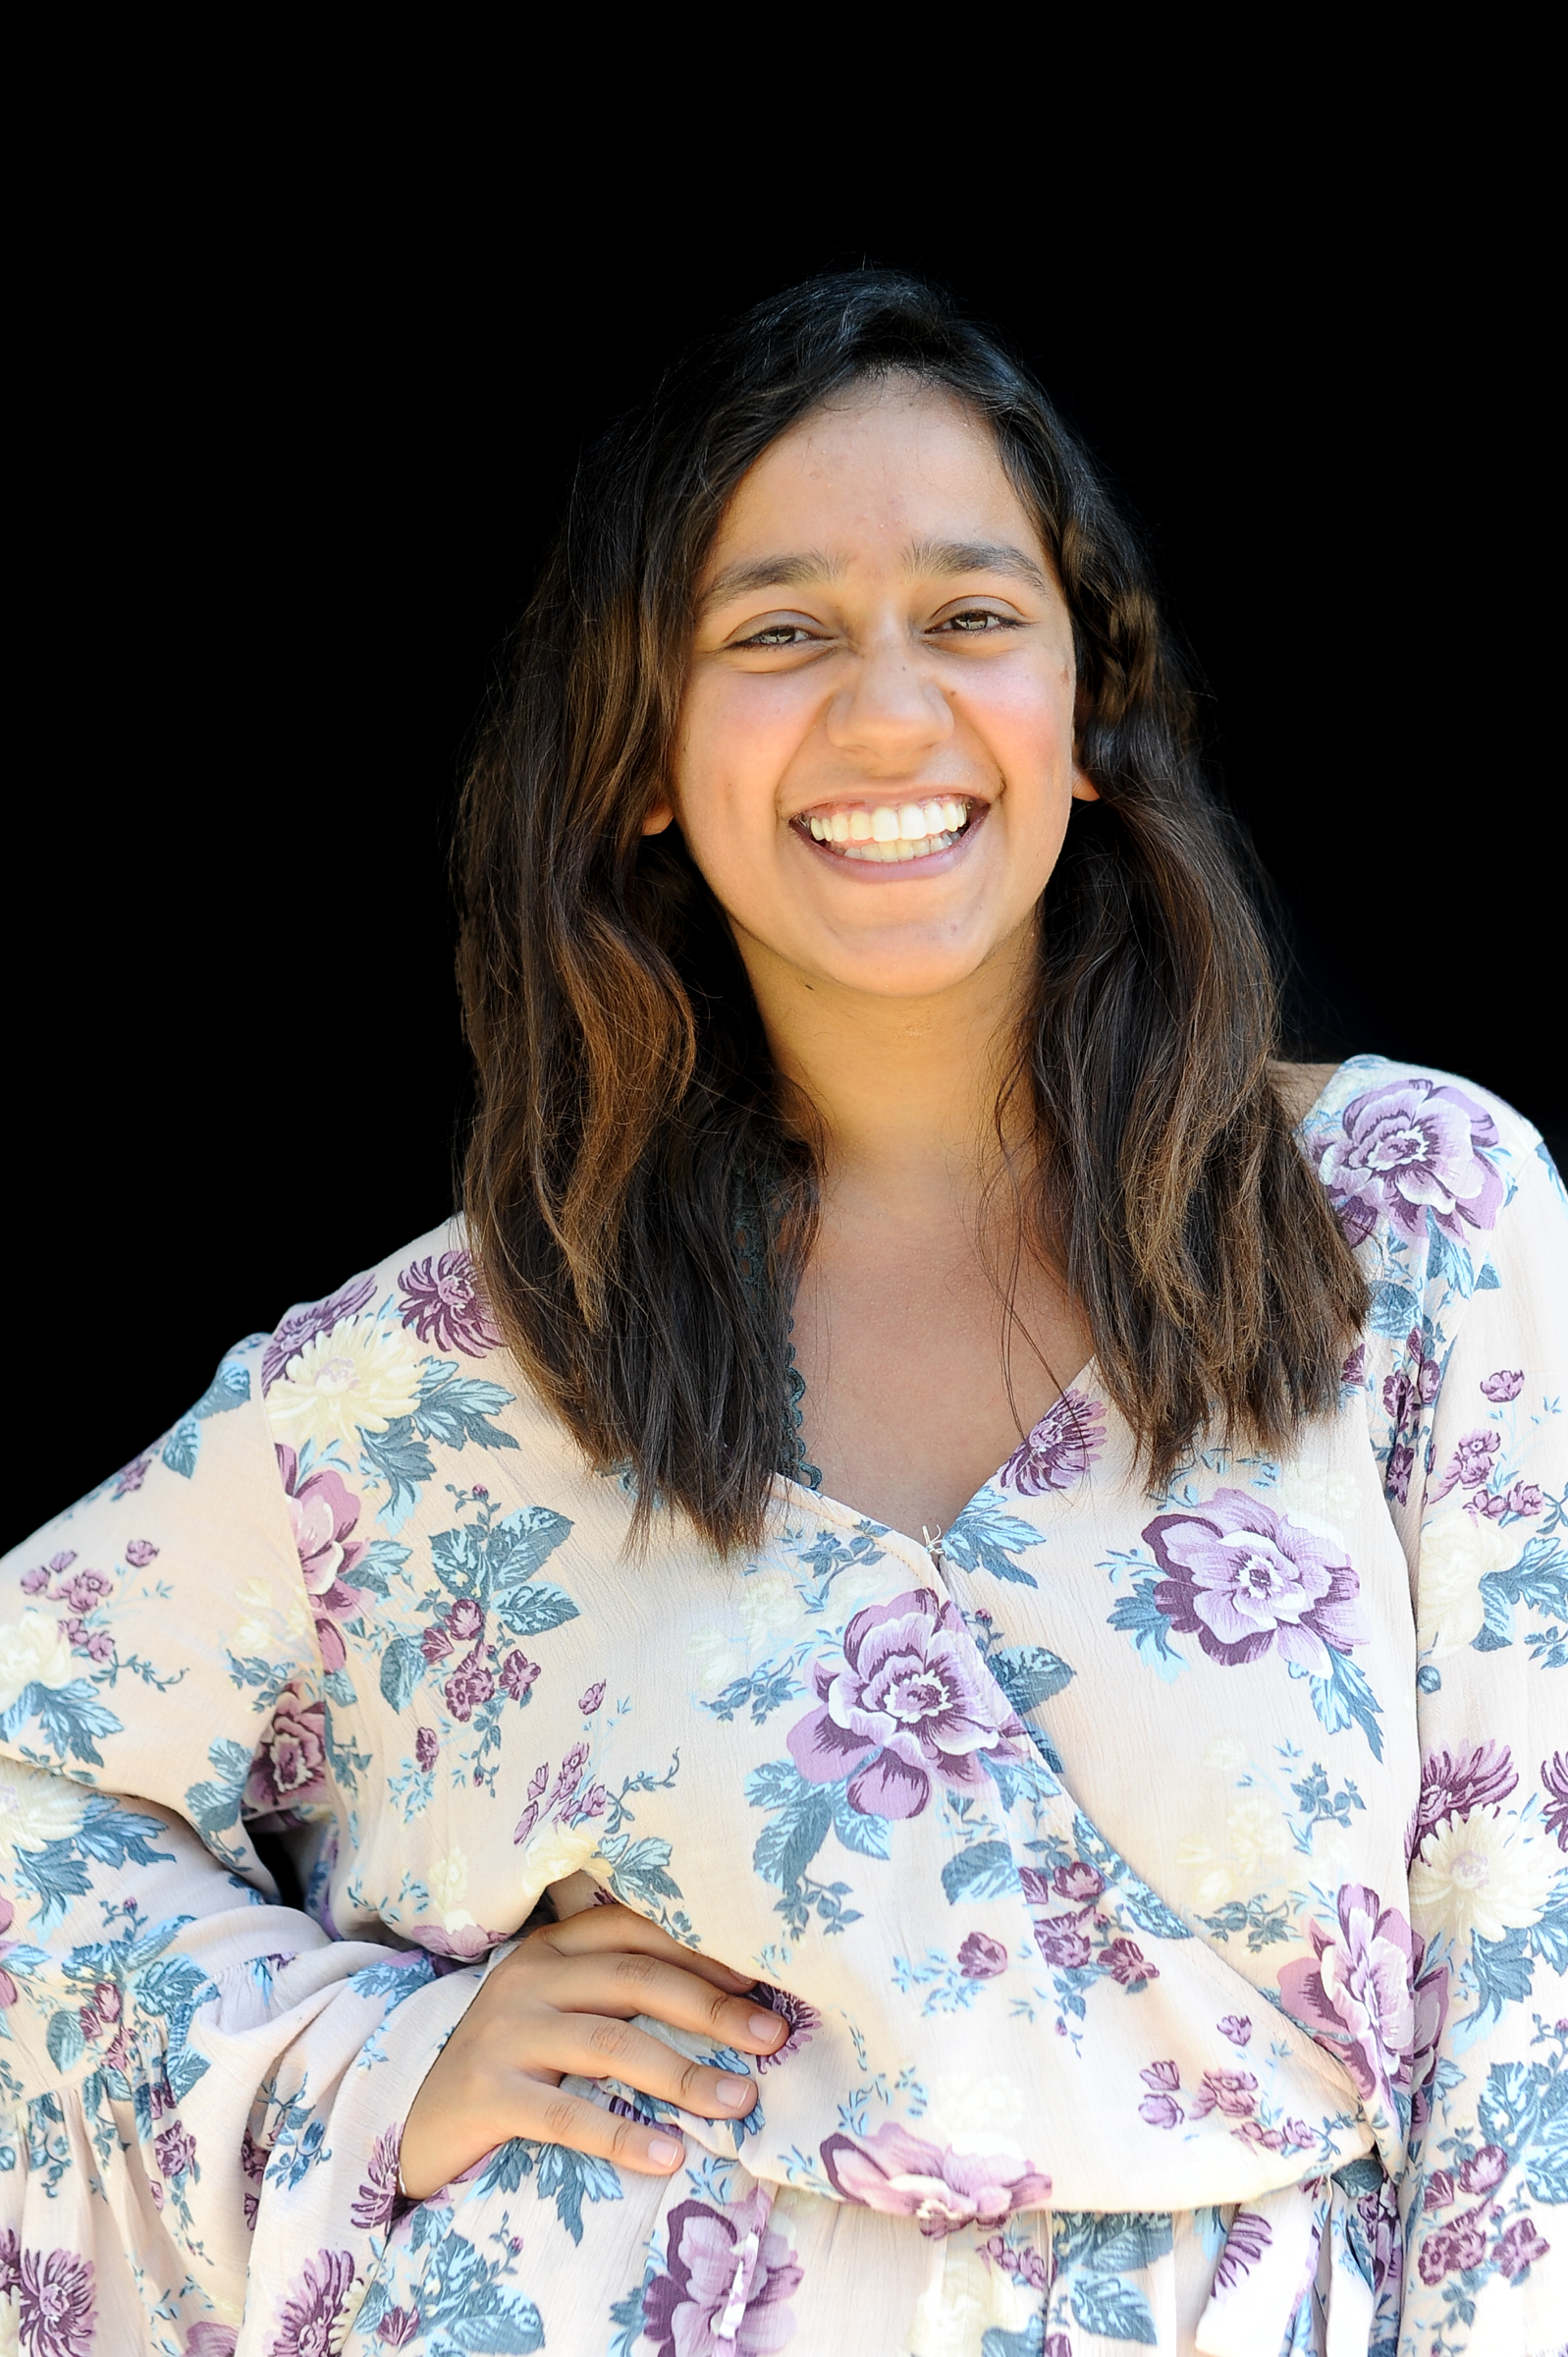 Name: Eesha Khanna